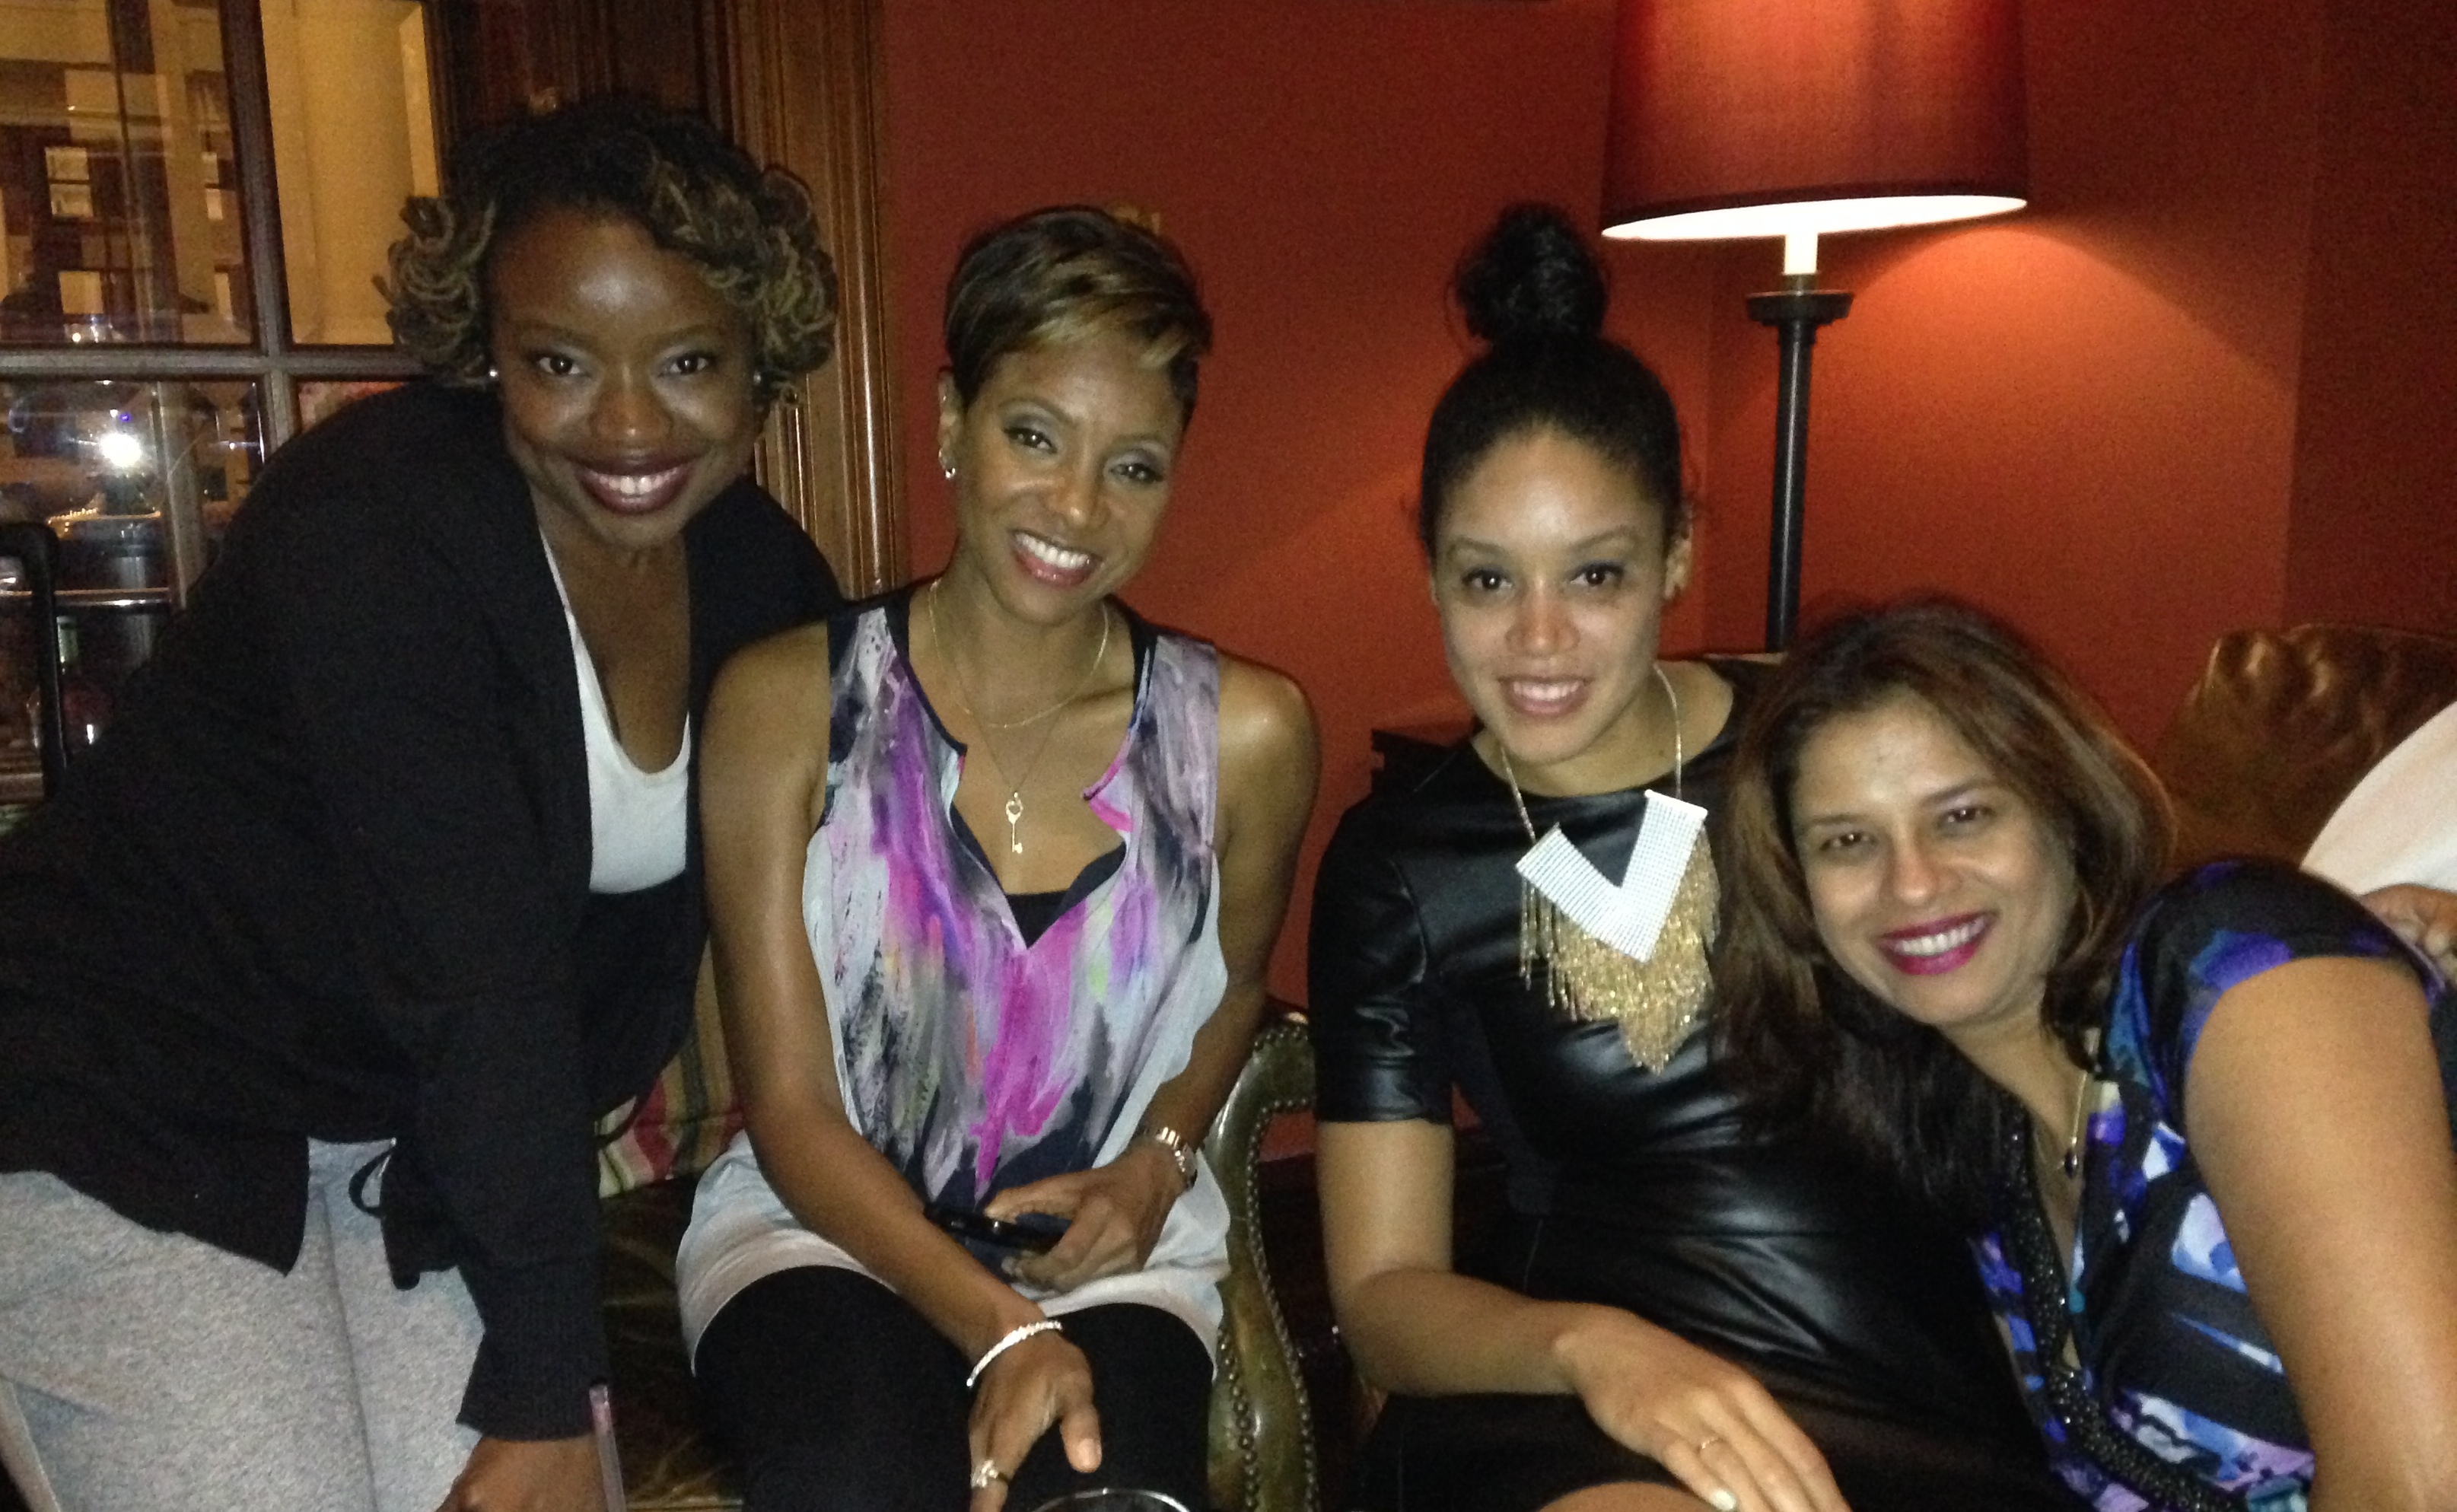 Hanging out with MC Lyte